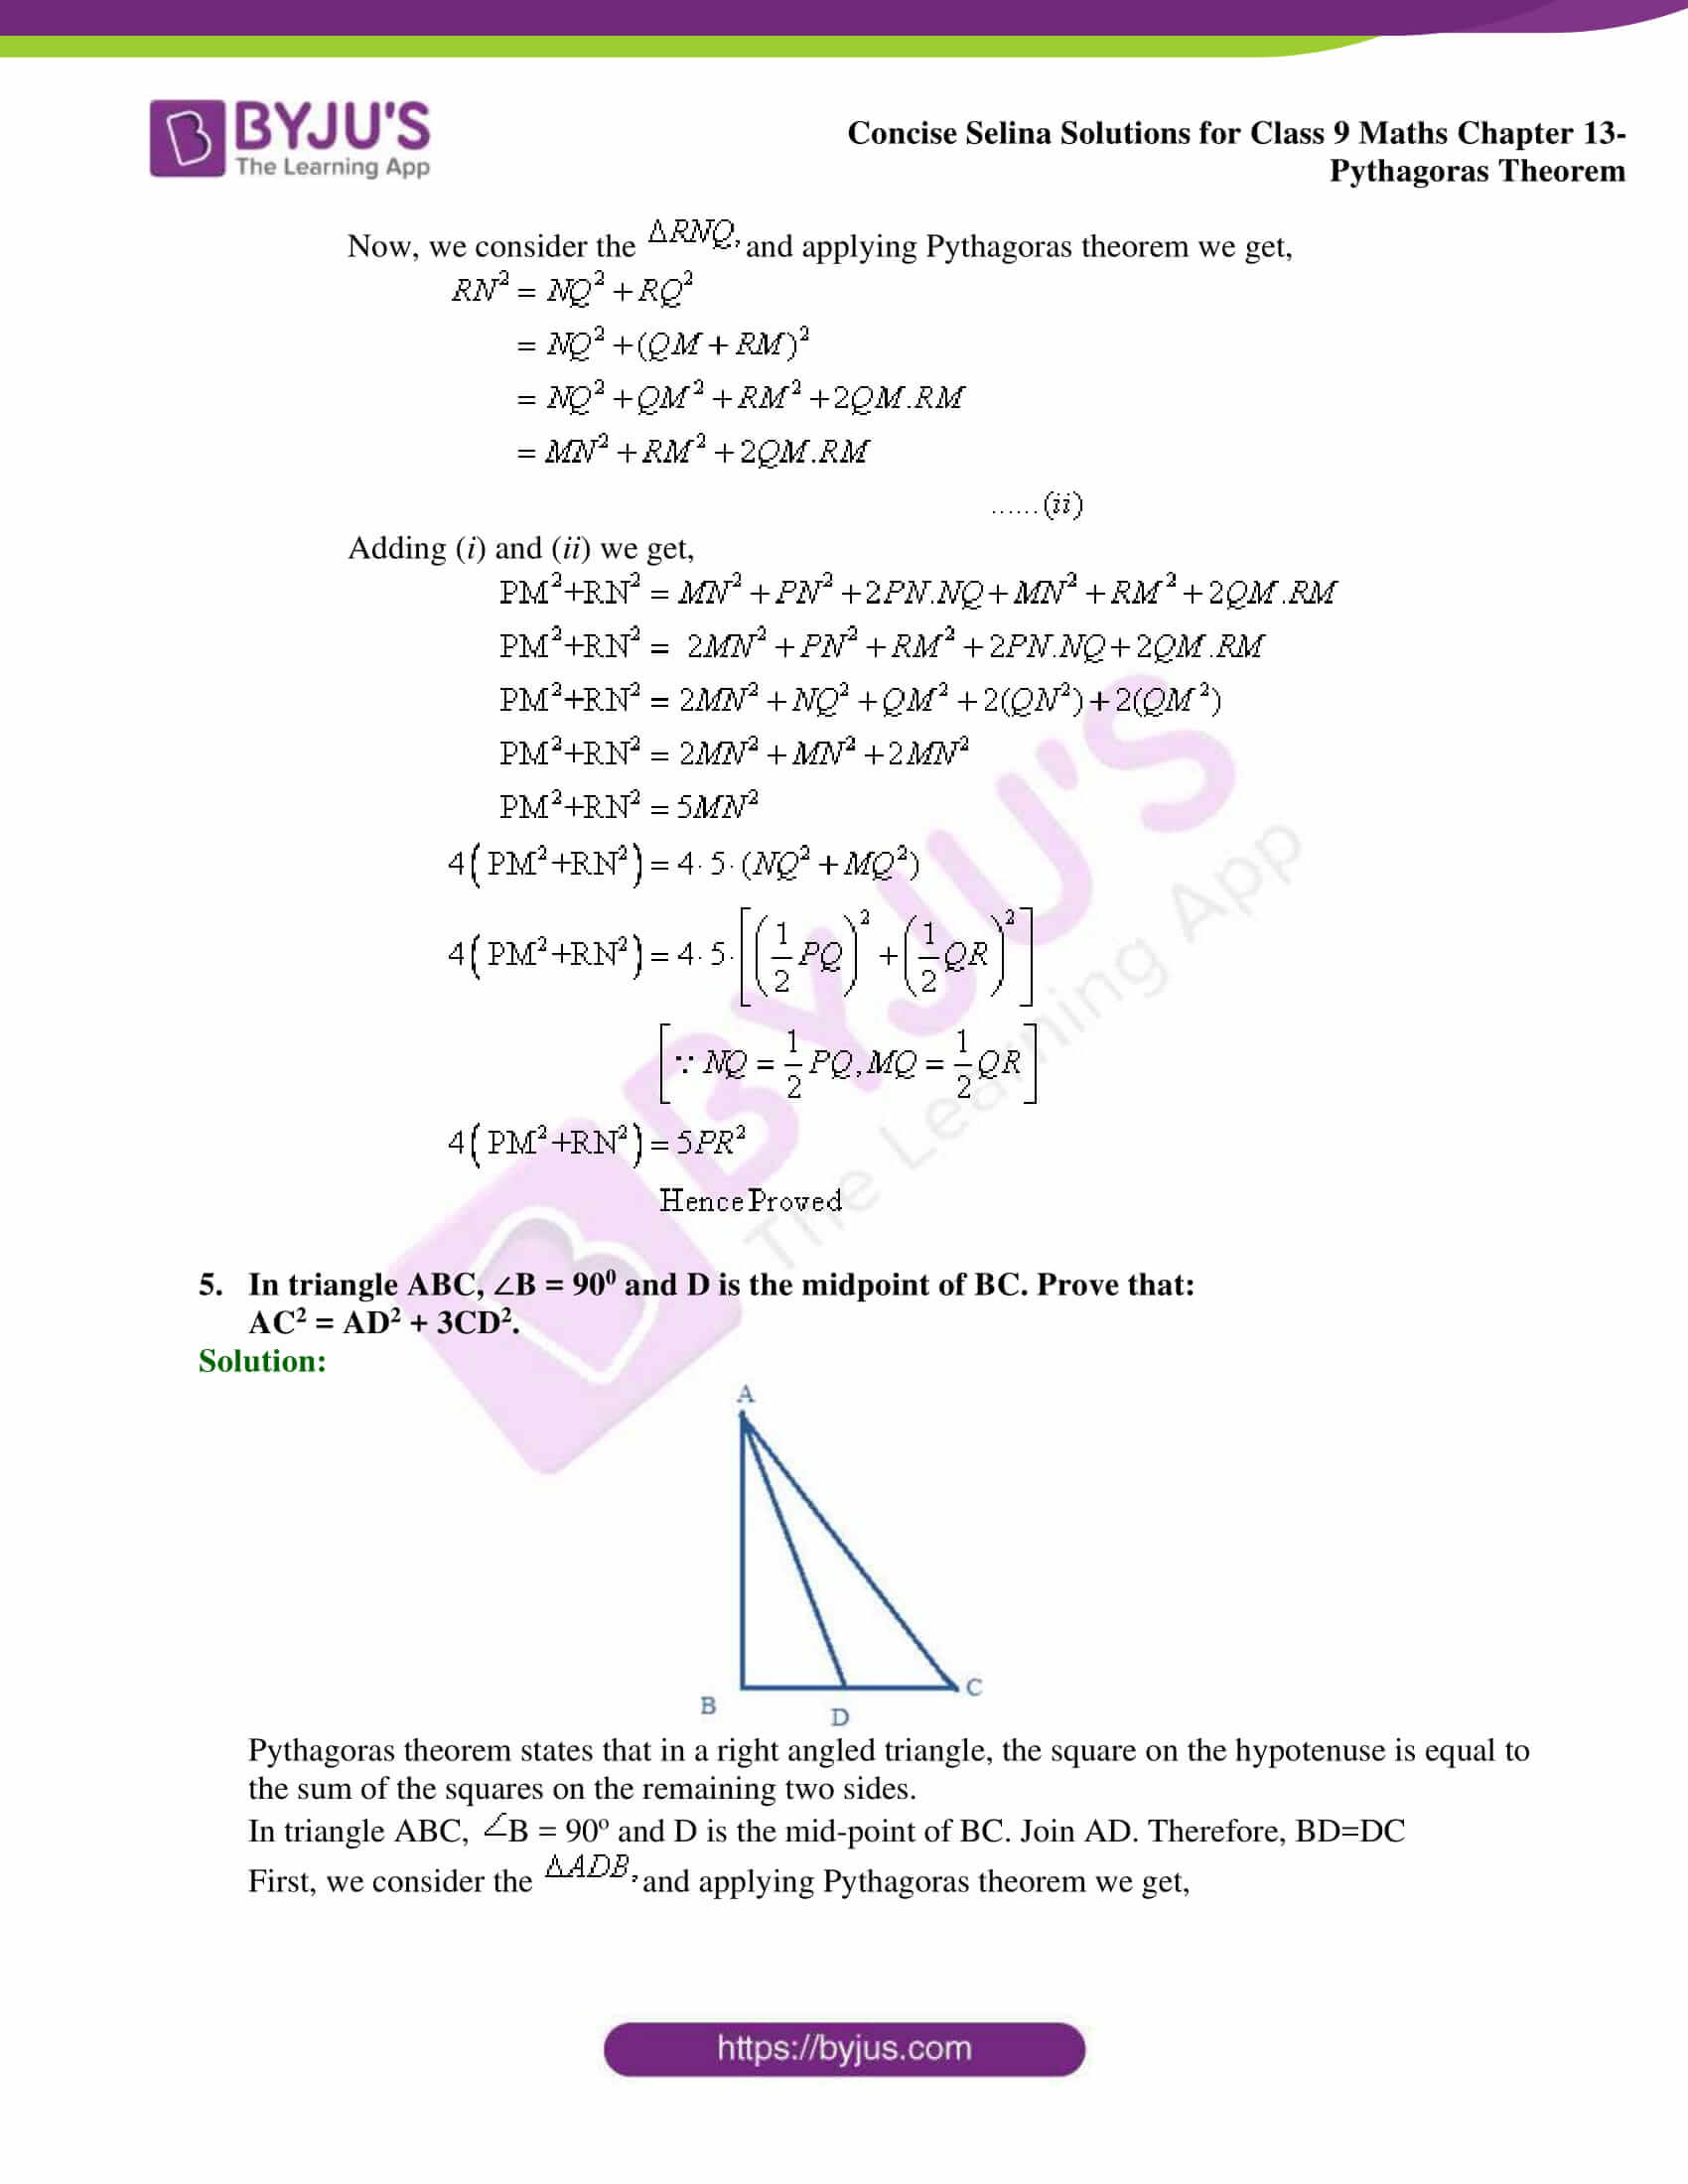 selina Solutions for Class 9 Maths Chapter 13 part 14